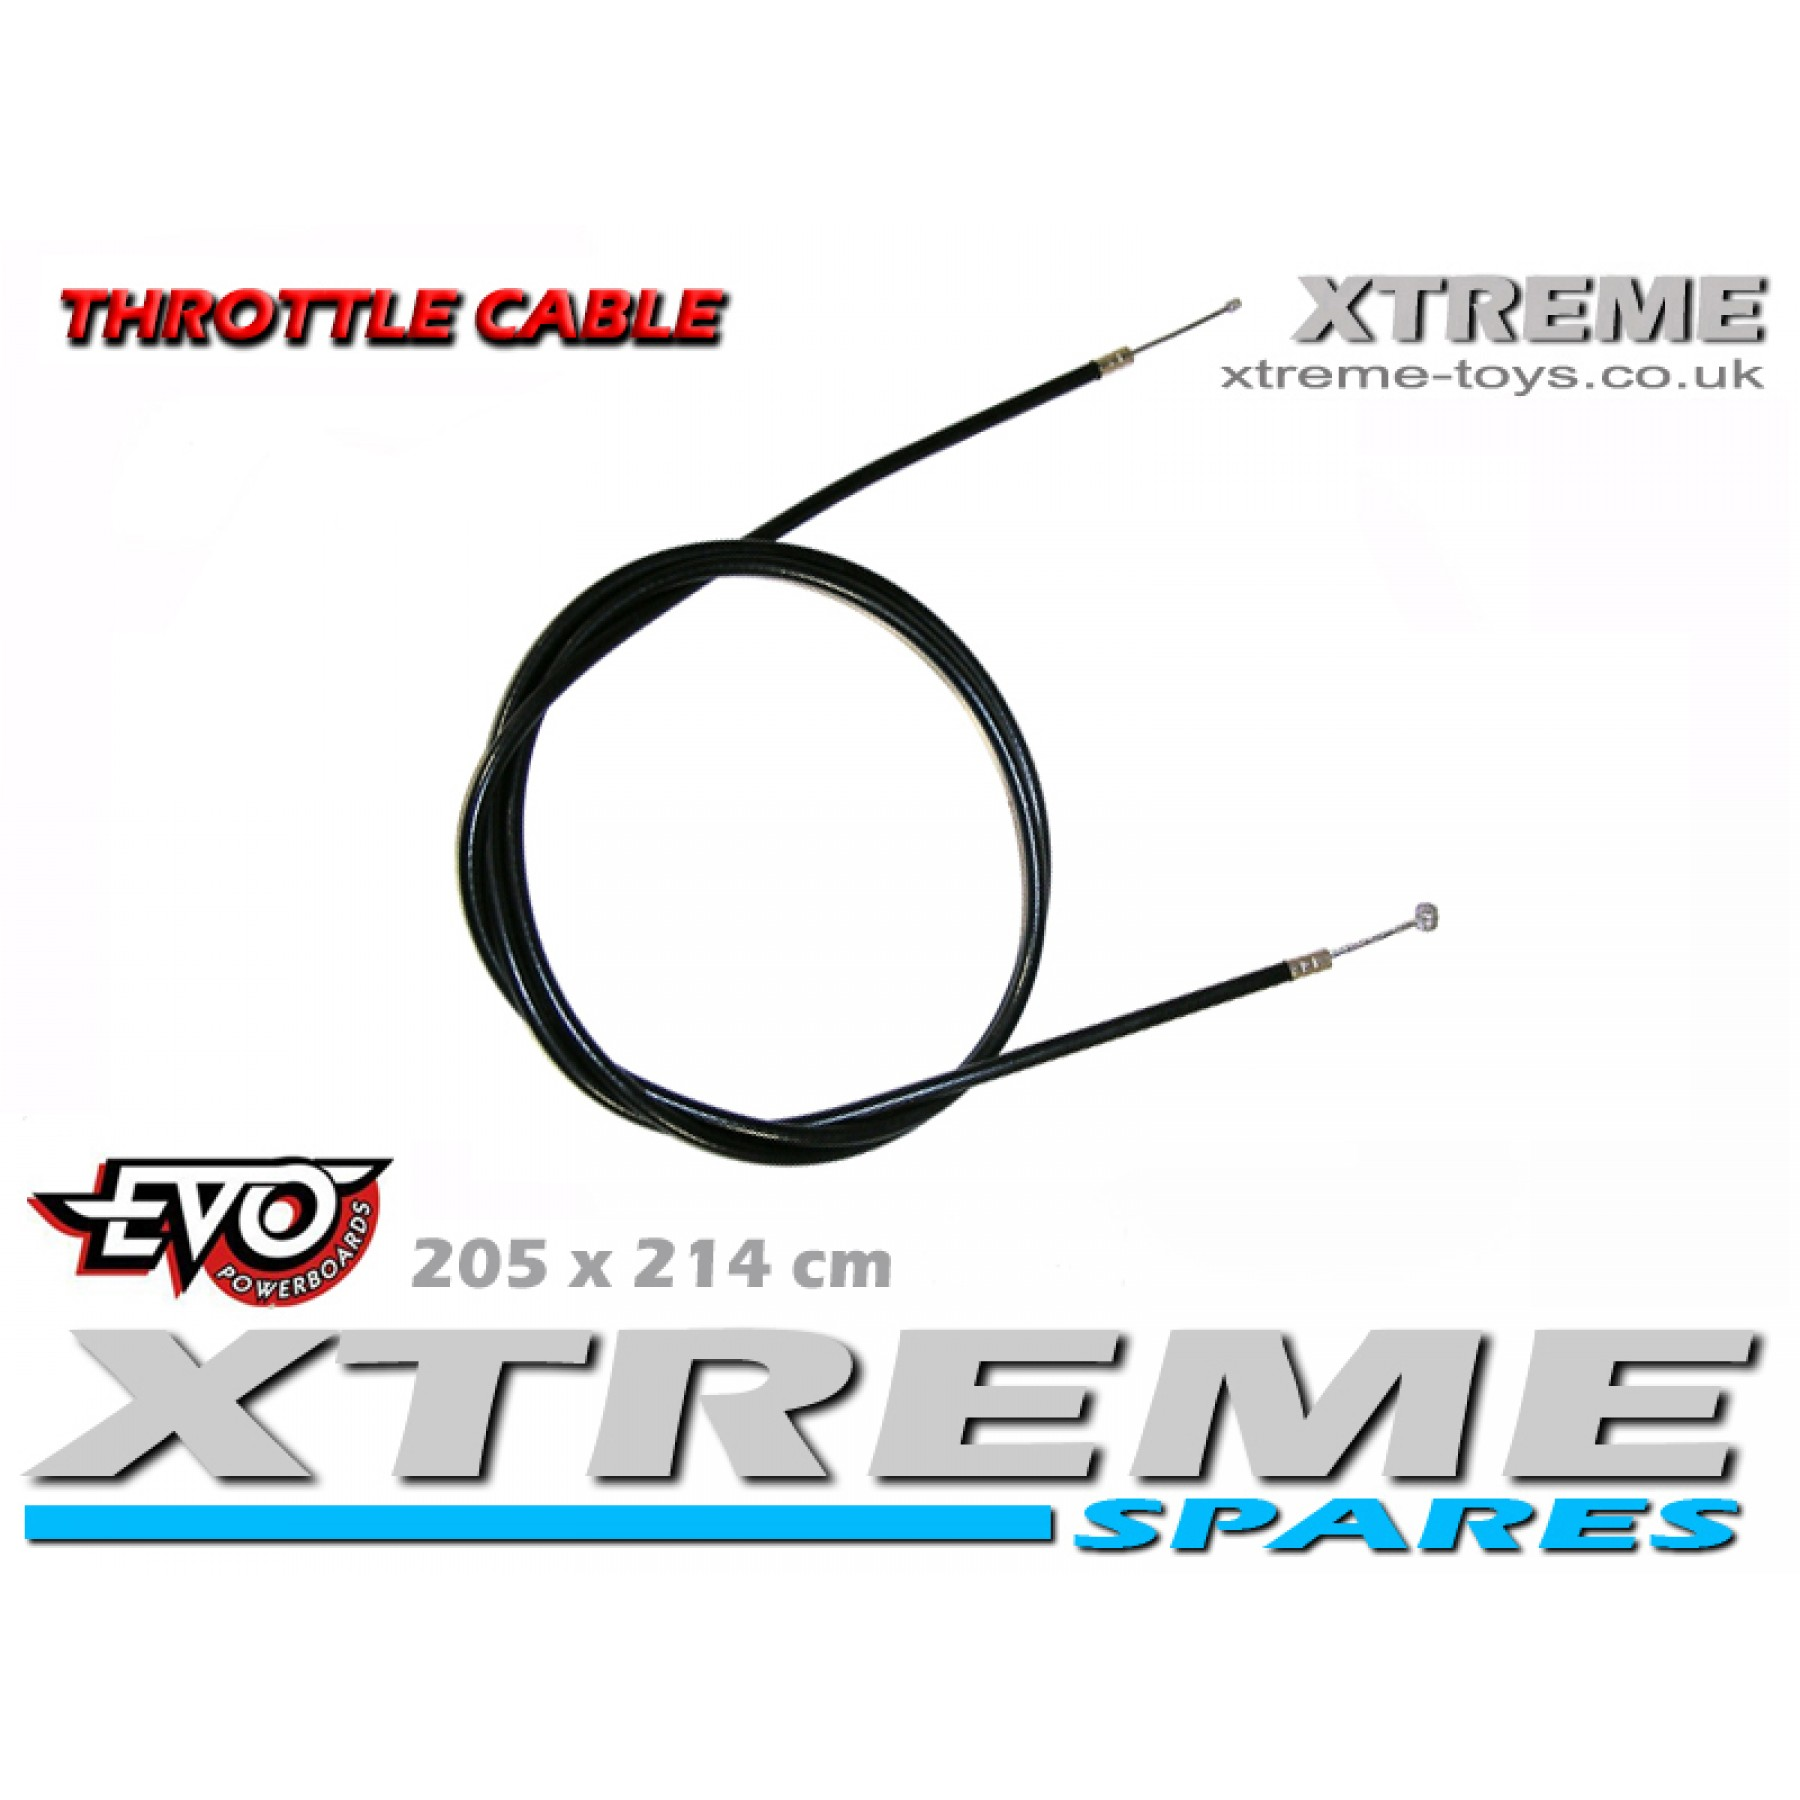 EVO PETROL SCOOTER 205 x 214cm THROTTE CABLE / GO PED / MOTORBOARD